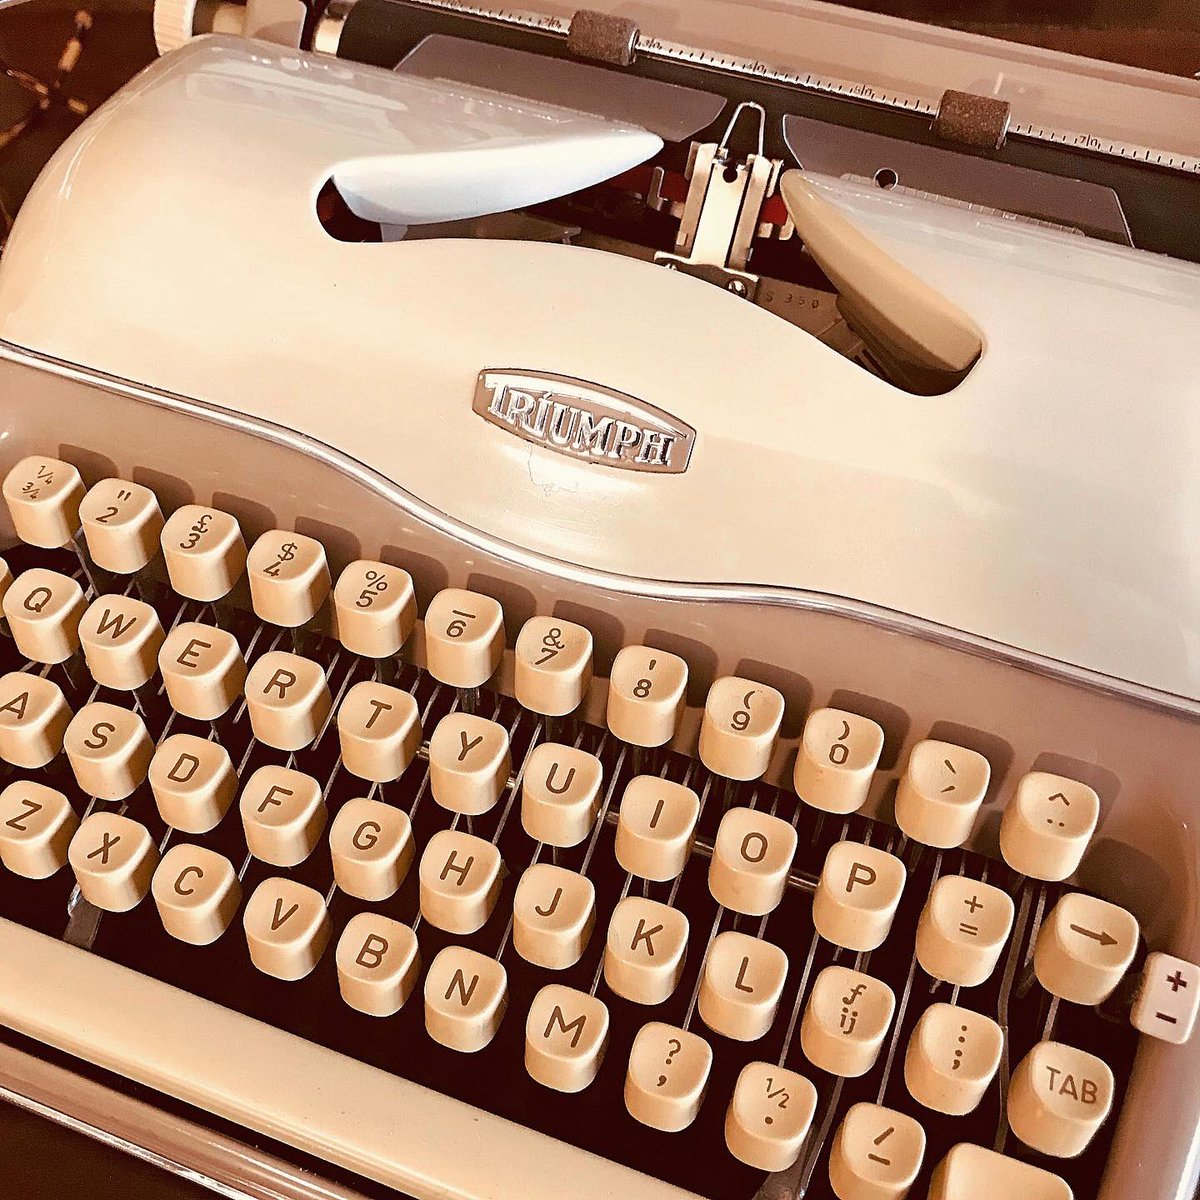 Motorcycles were not the only thing that Triumph produced: the Triumph Perfekt #typewriter from 1960, is a tour de force of brilliant engineering and superb aesthetic design. Now at Acme. #typewriter #triumphmotorcycles #triumph #FridayFeeling